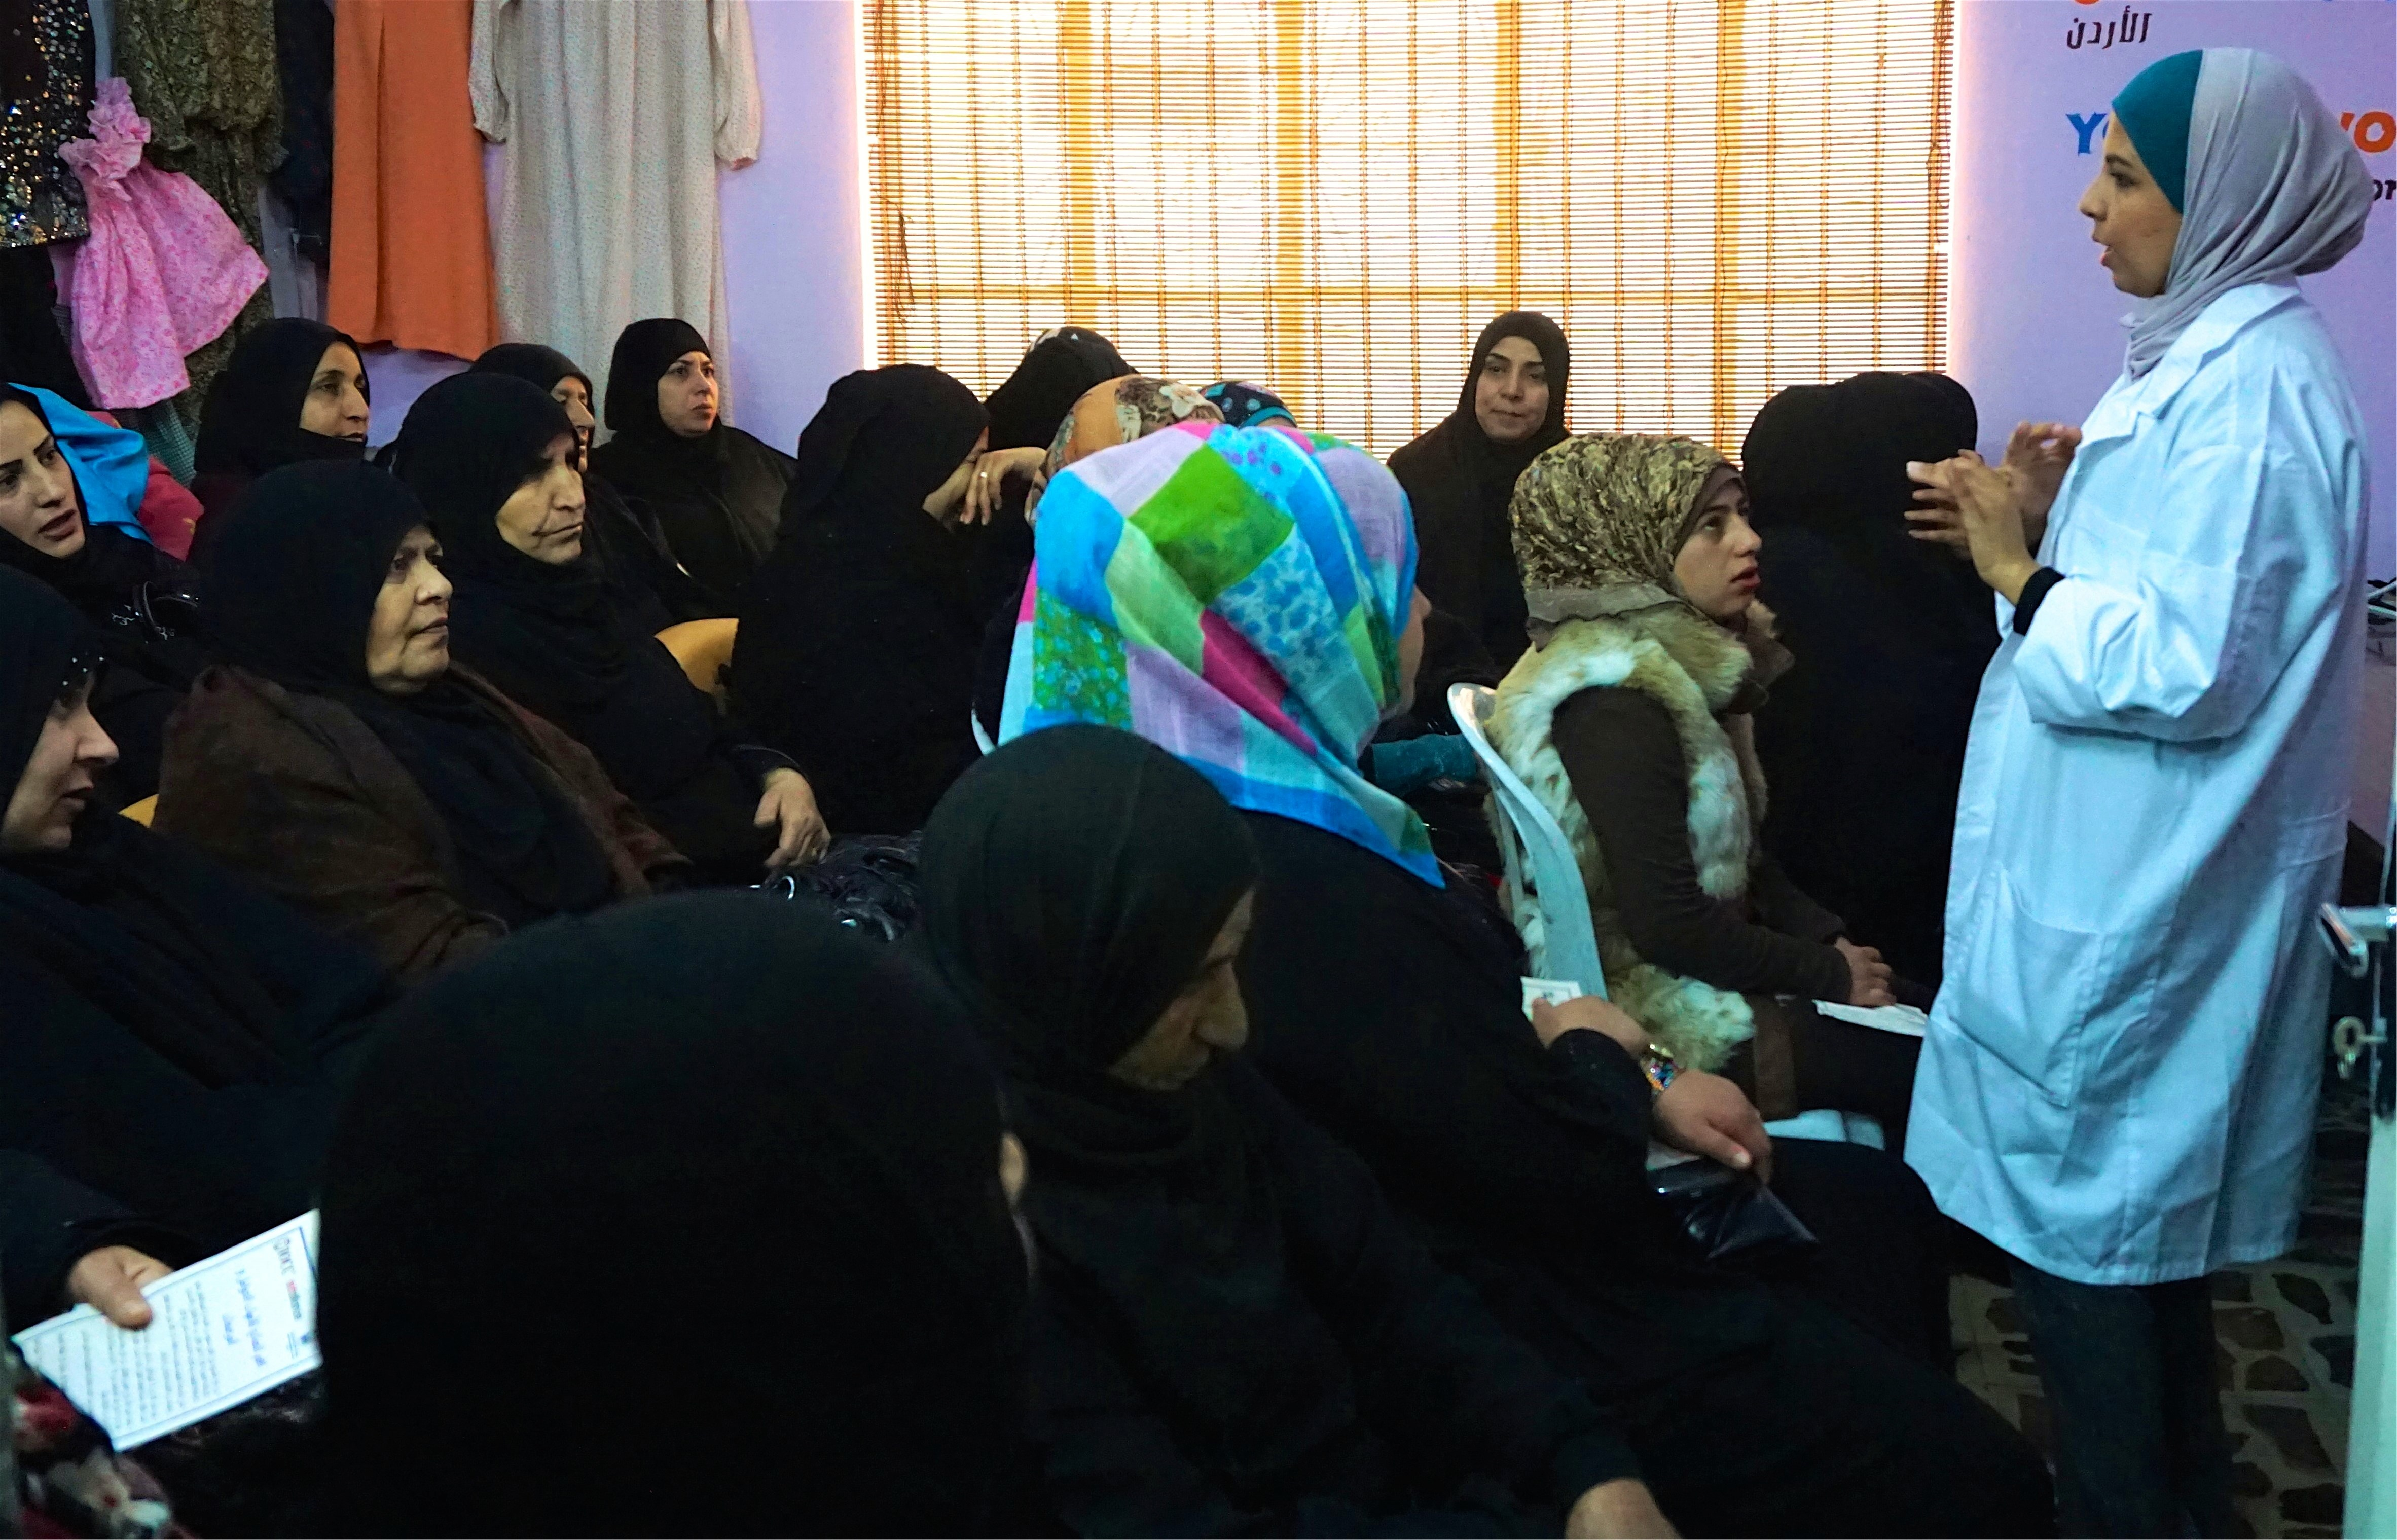 A health educator leads an awareness session for women